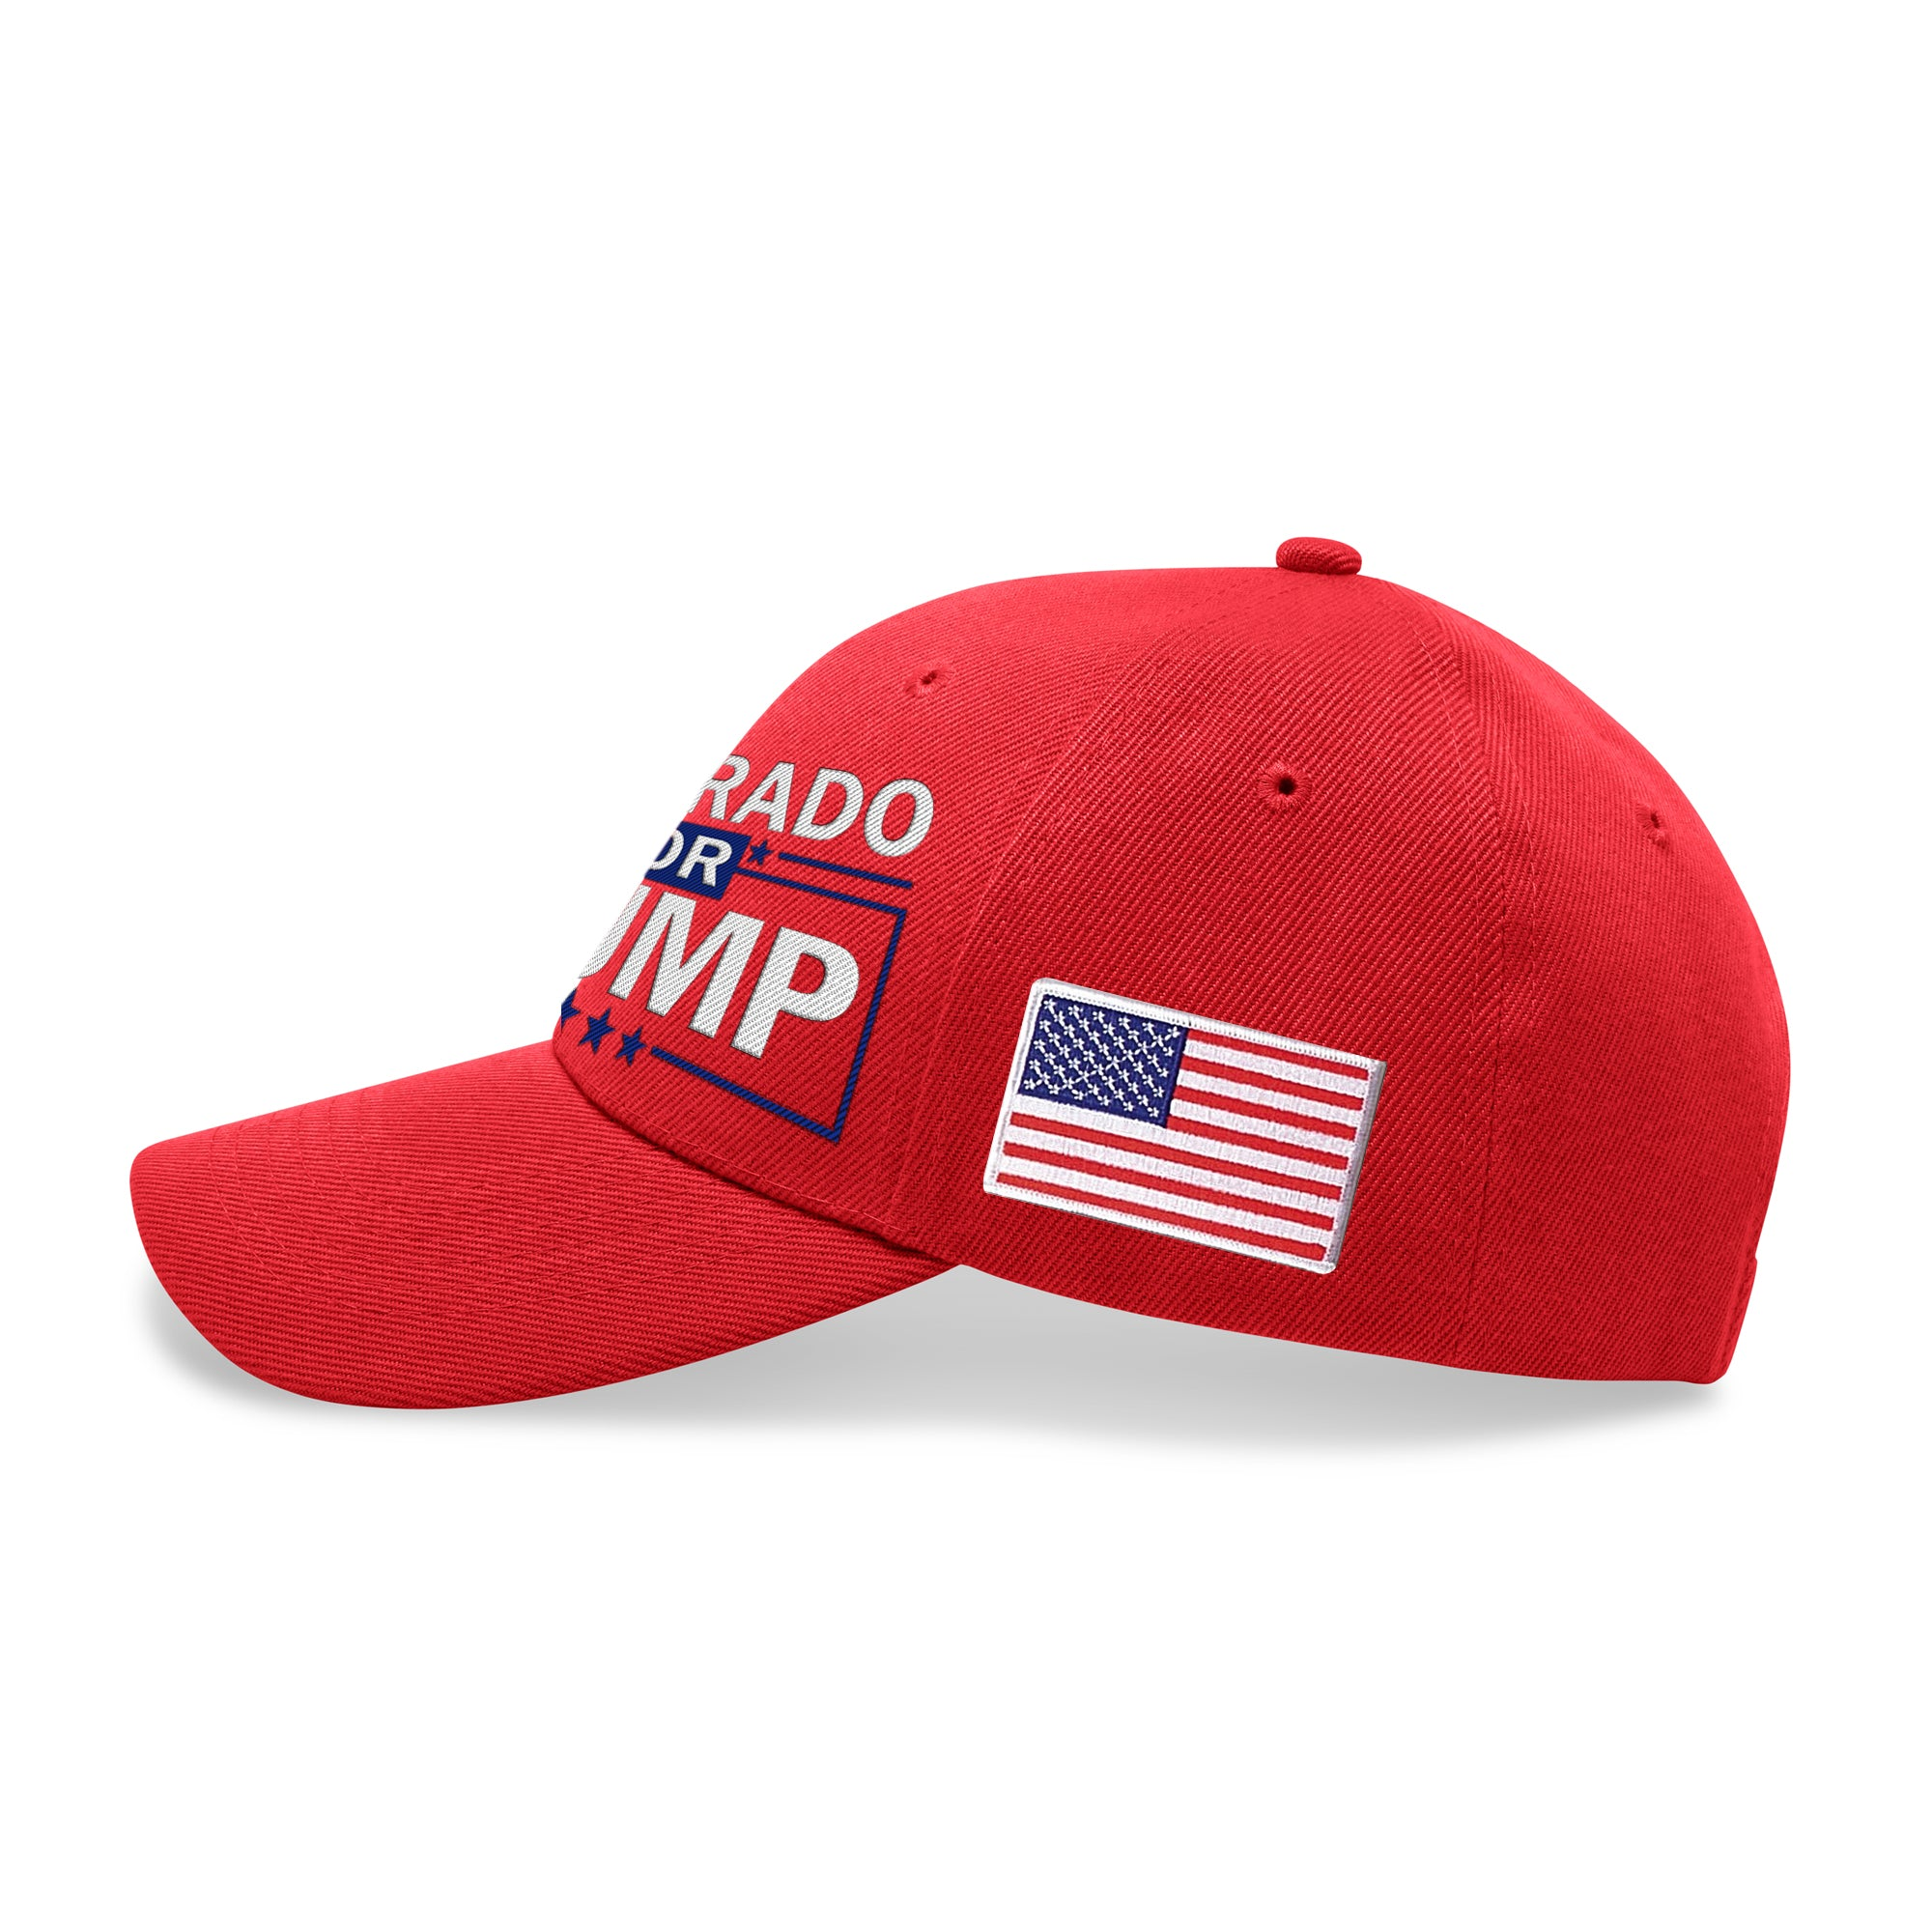 Colorado For Trump Limited Edition Embroidered Hat